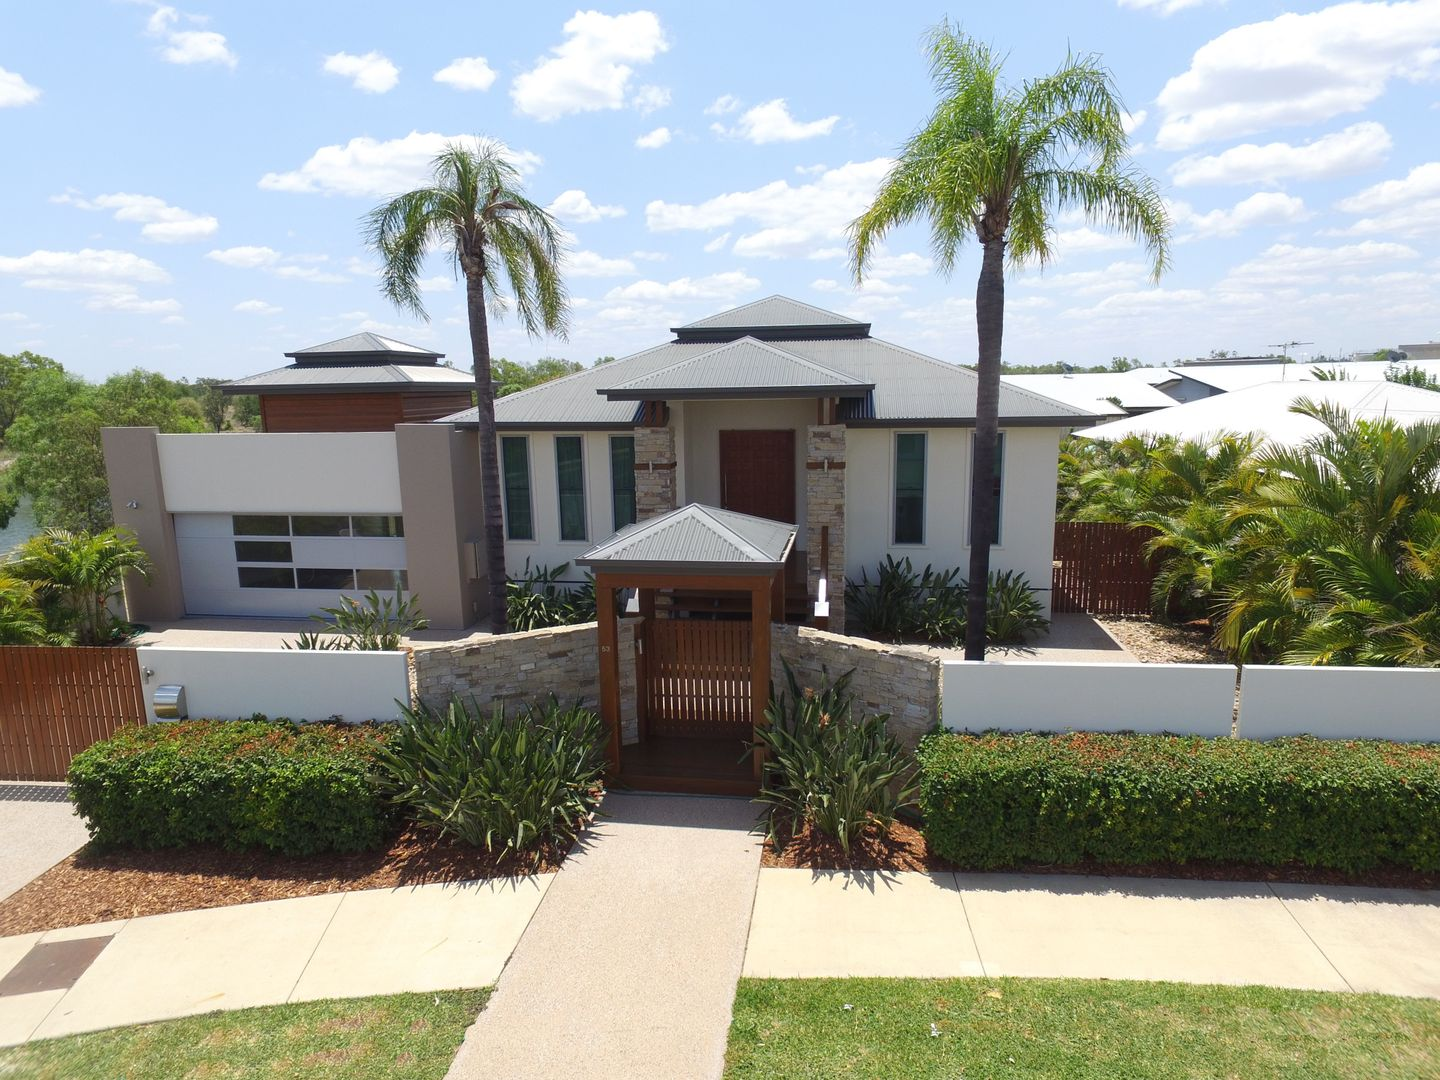 53 Lakeside Drive, Emerald QLD 4720 - House For Sale | Domain